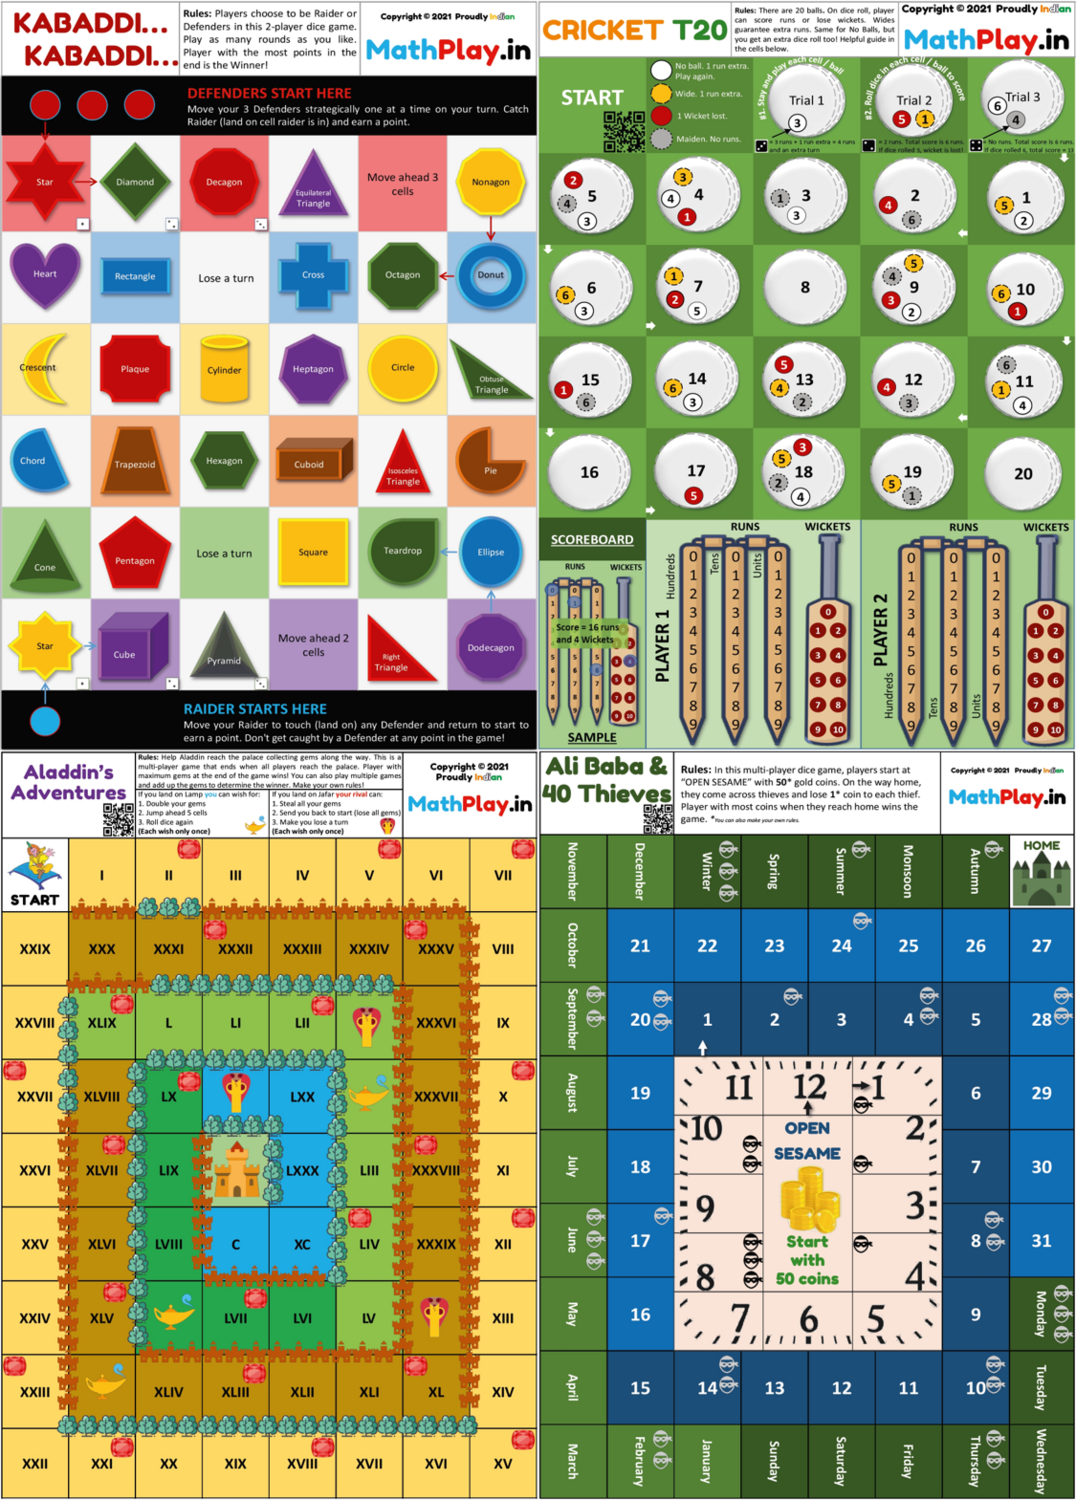 MathPlay Sports 'n Tales Combo - Fun and Educational Board Games for Kids (5-10 Years) to Learn Maths   Children Gift, Award and Competition Award Option